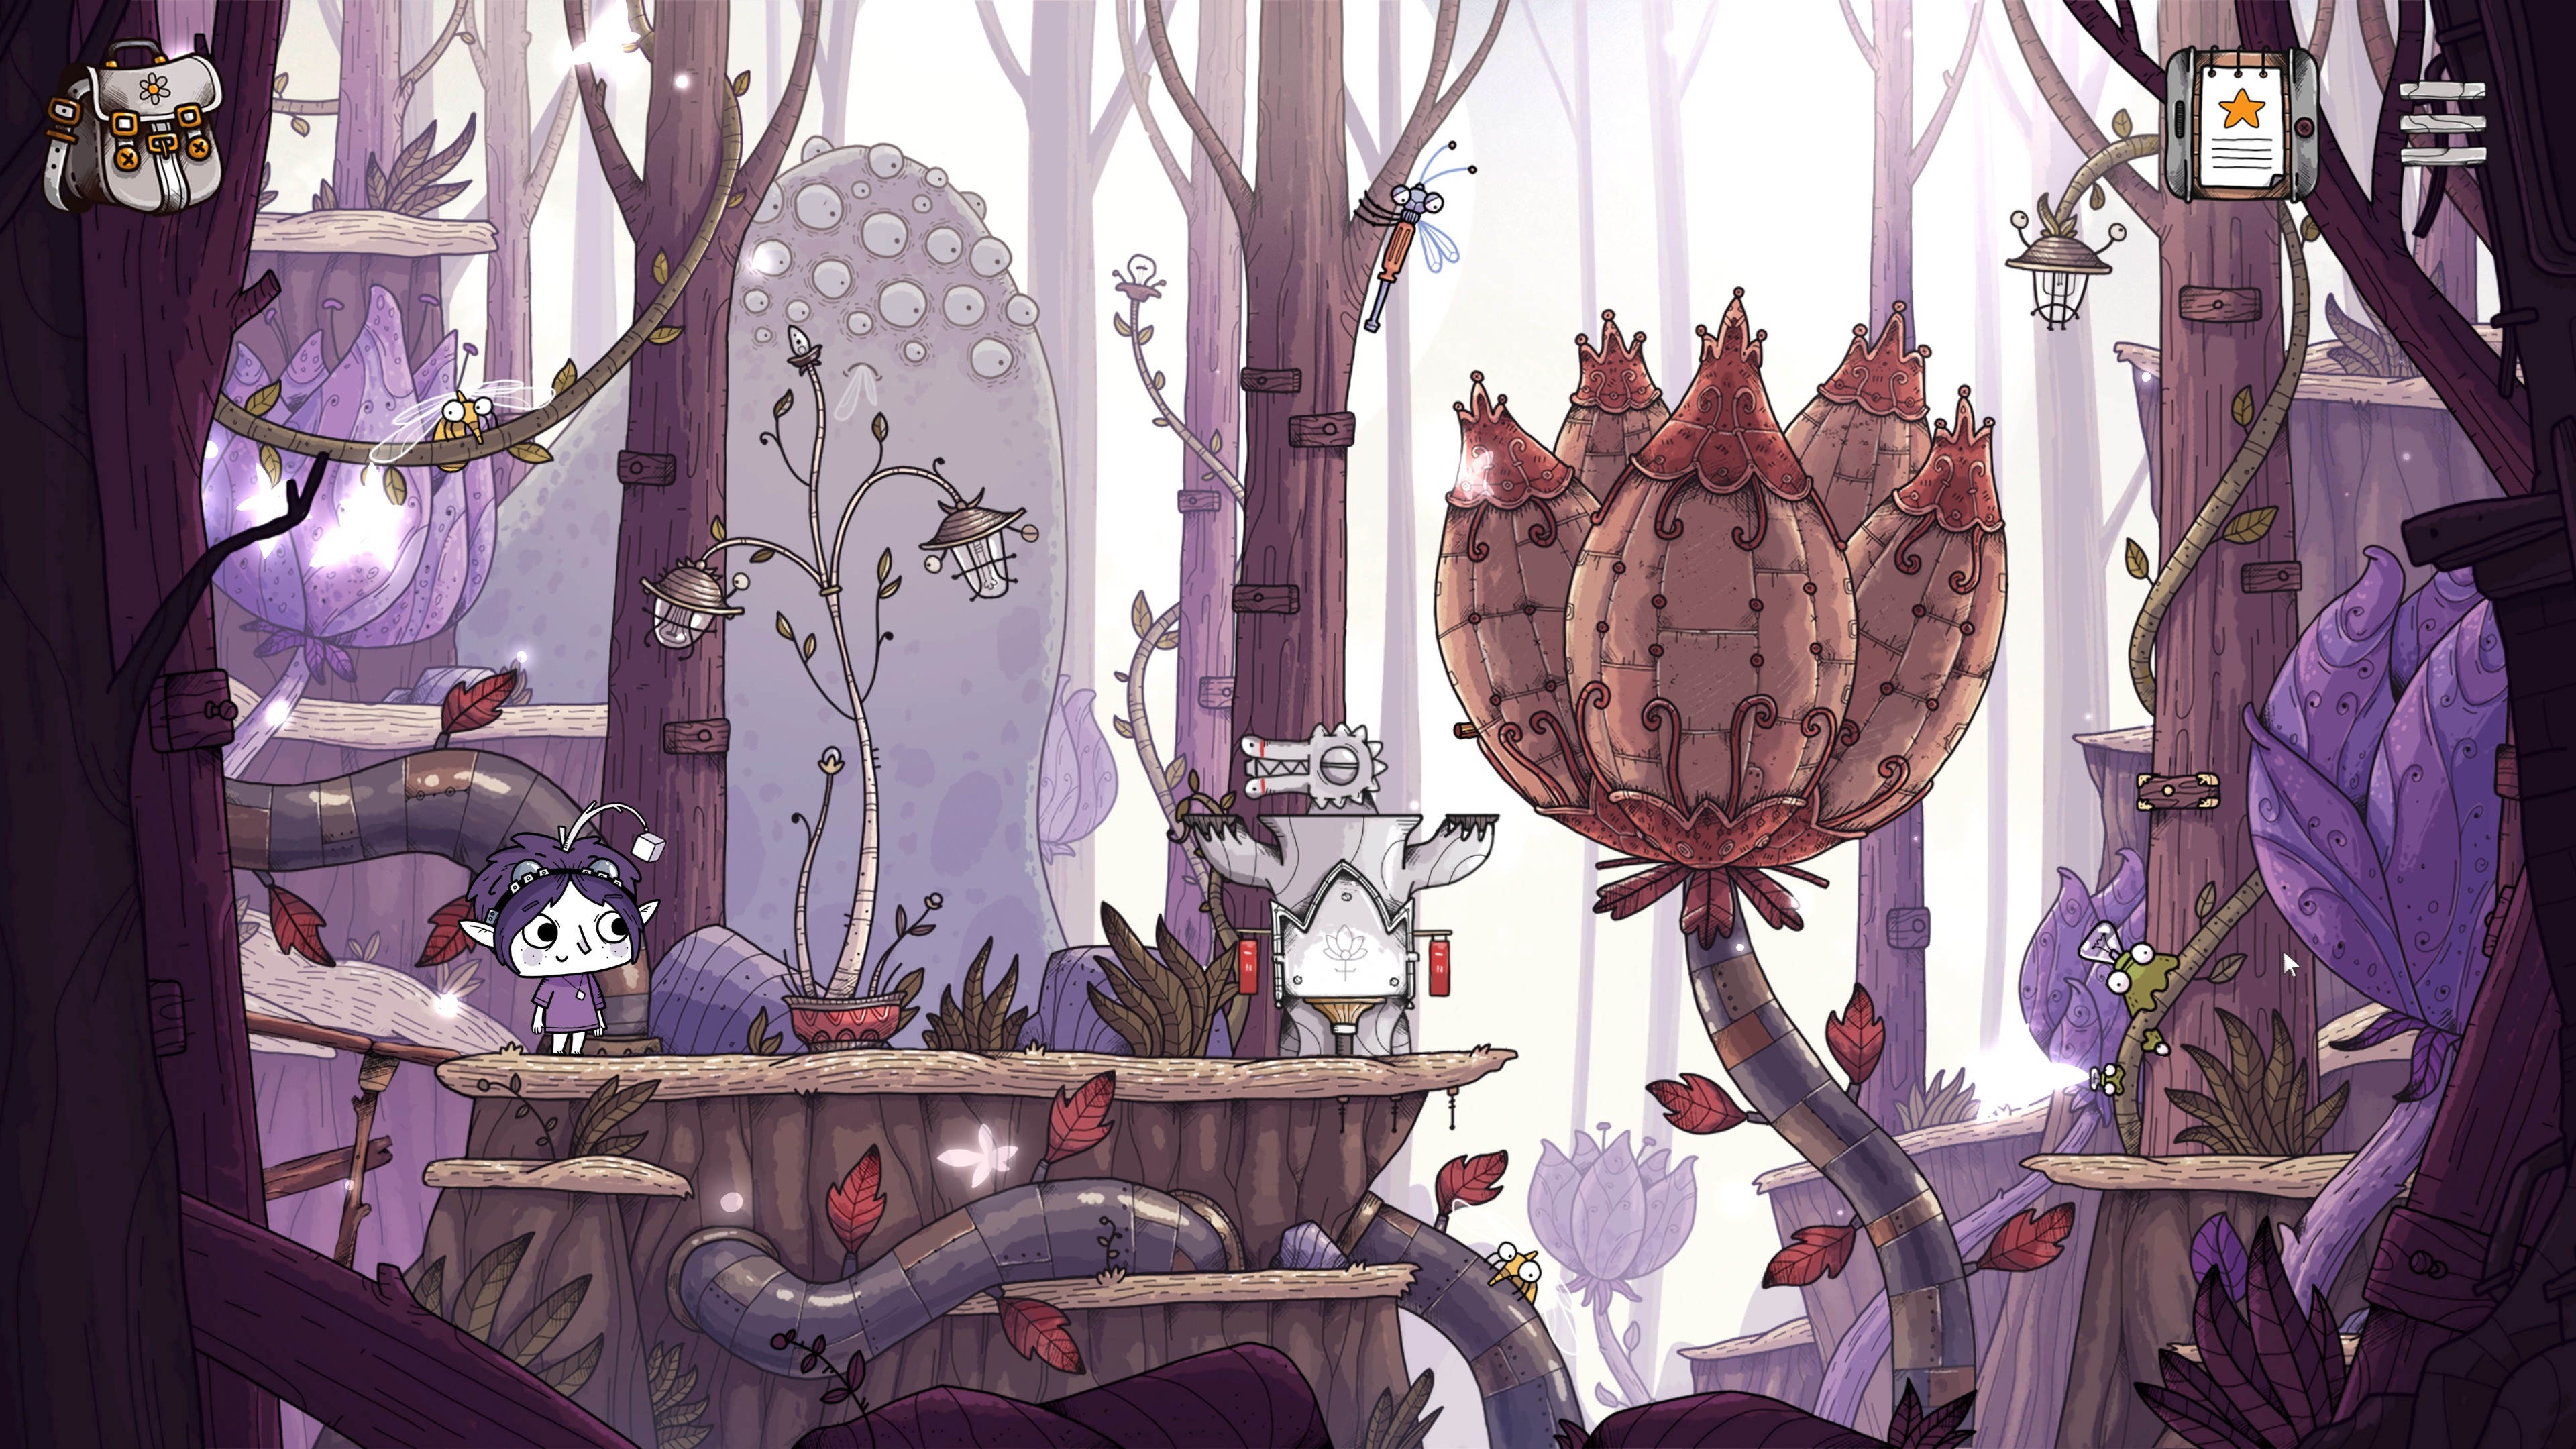 TOHU. Girl standing in a forest next to a giant mechanical flower